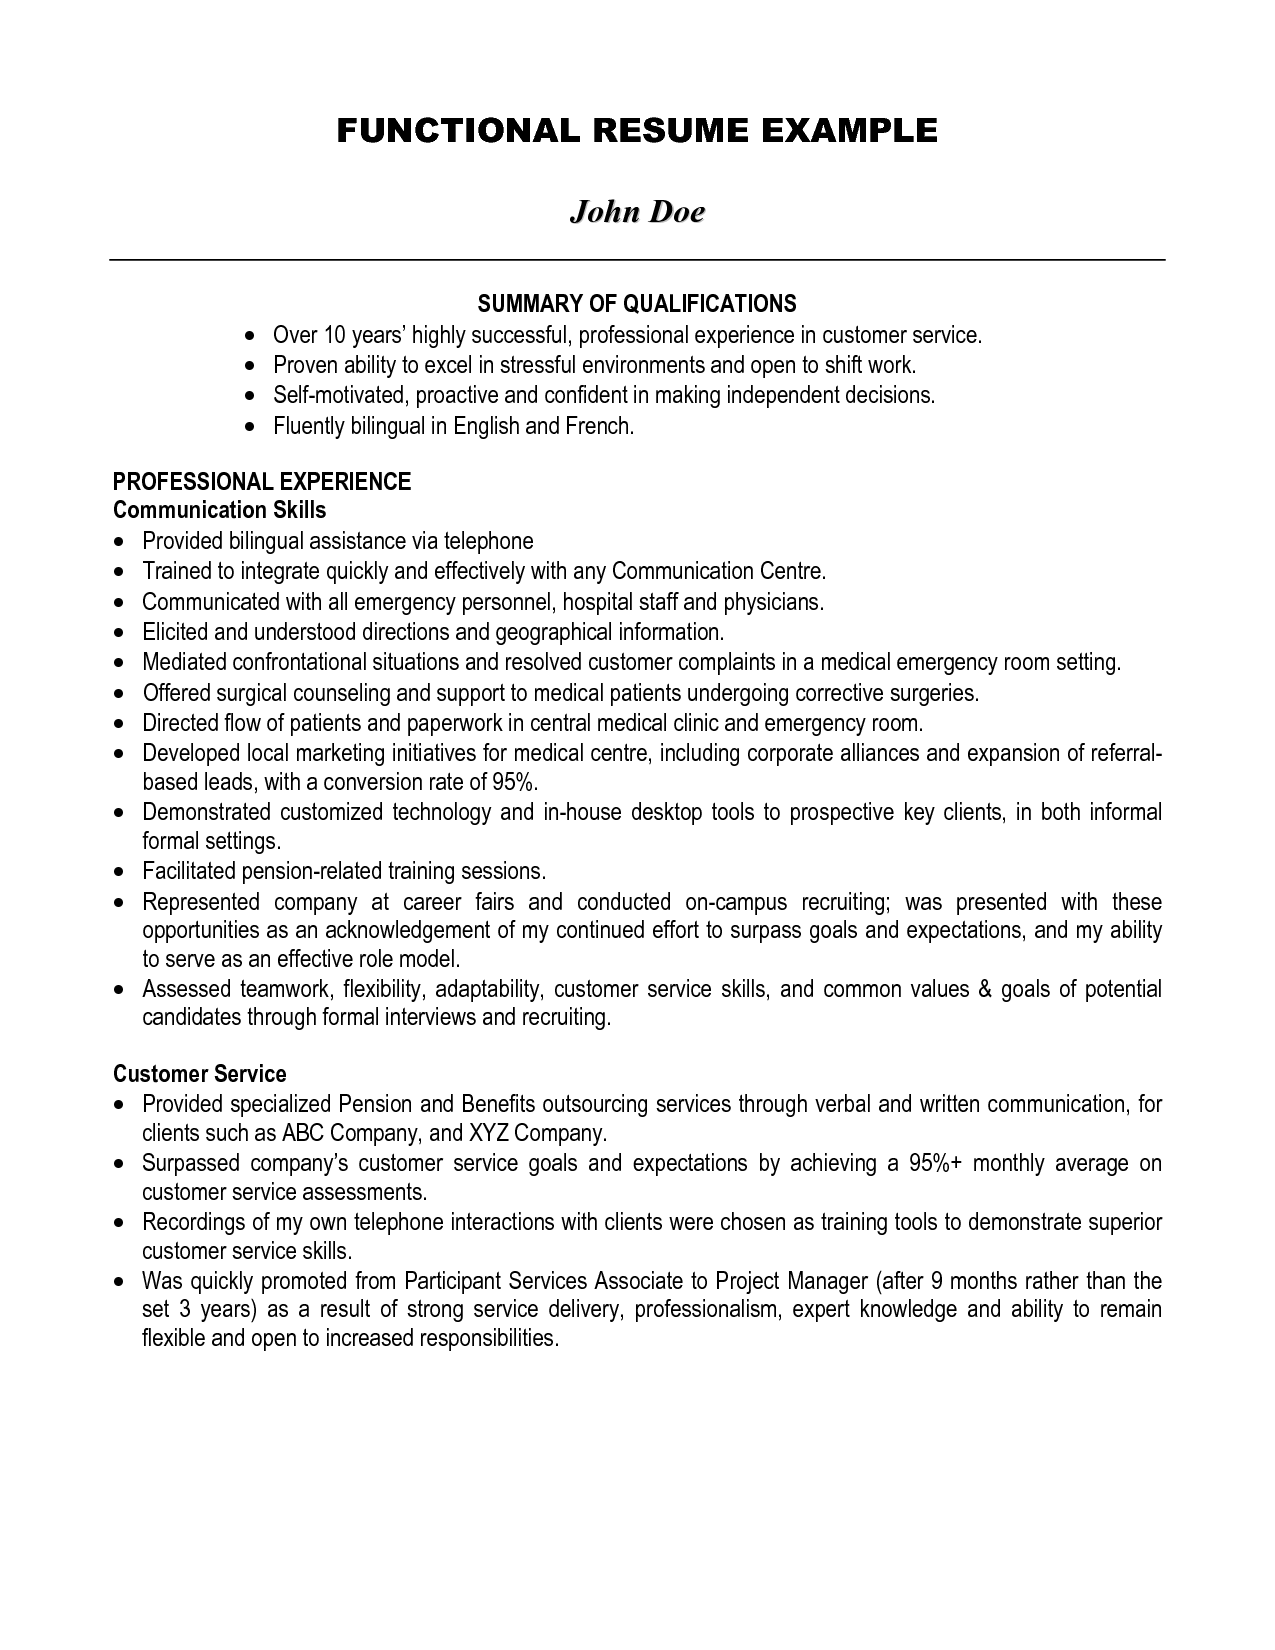 Qualifications Resume Sample Best Summary Of Qualifications Resume For 2016